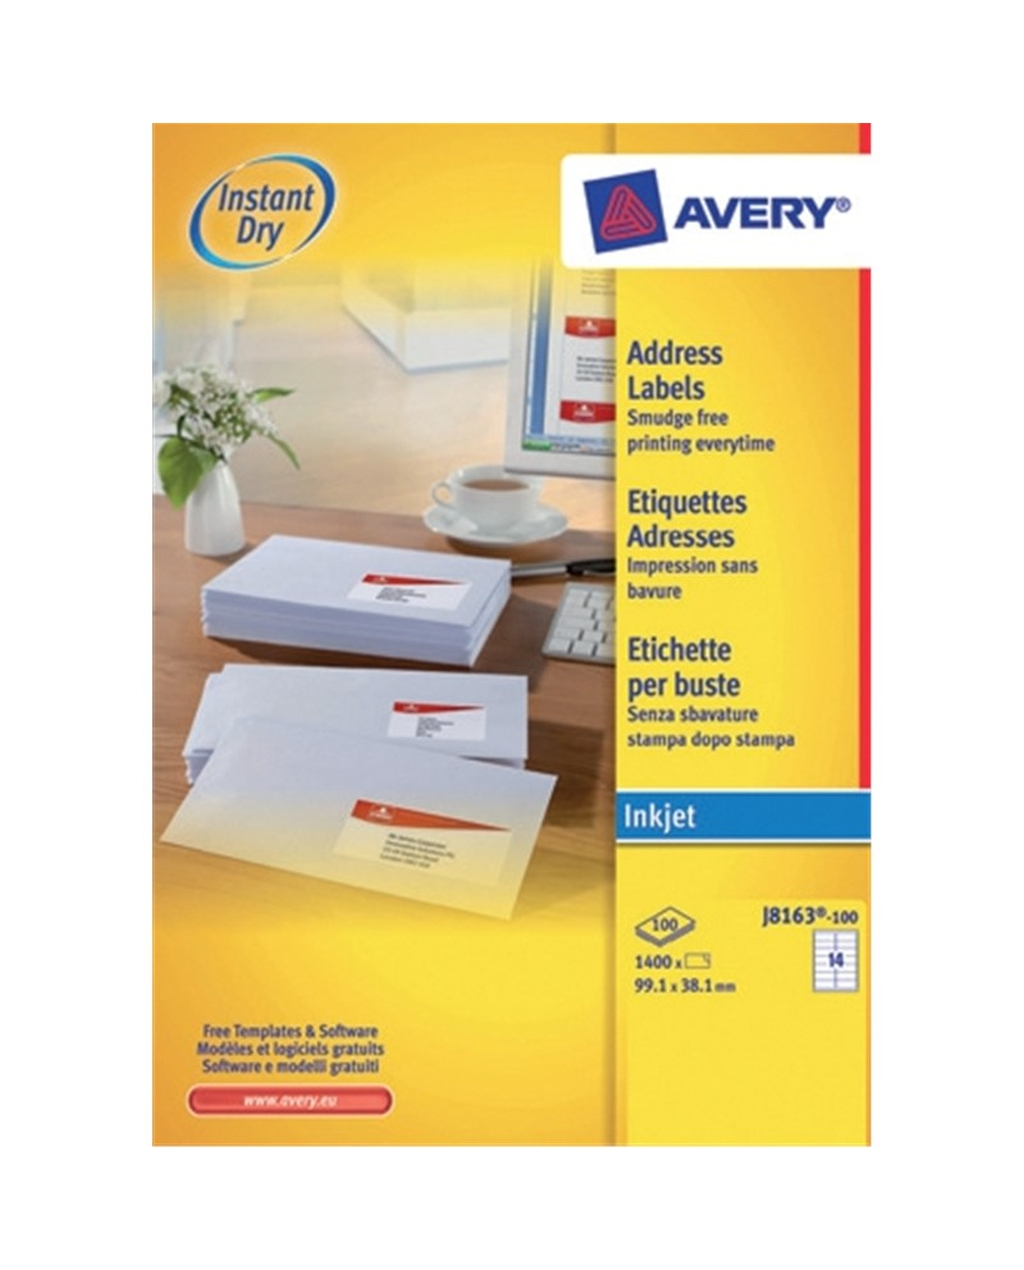 Avery Inkjet Labels - J8163, 99.1 x 38.1mm